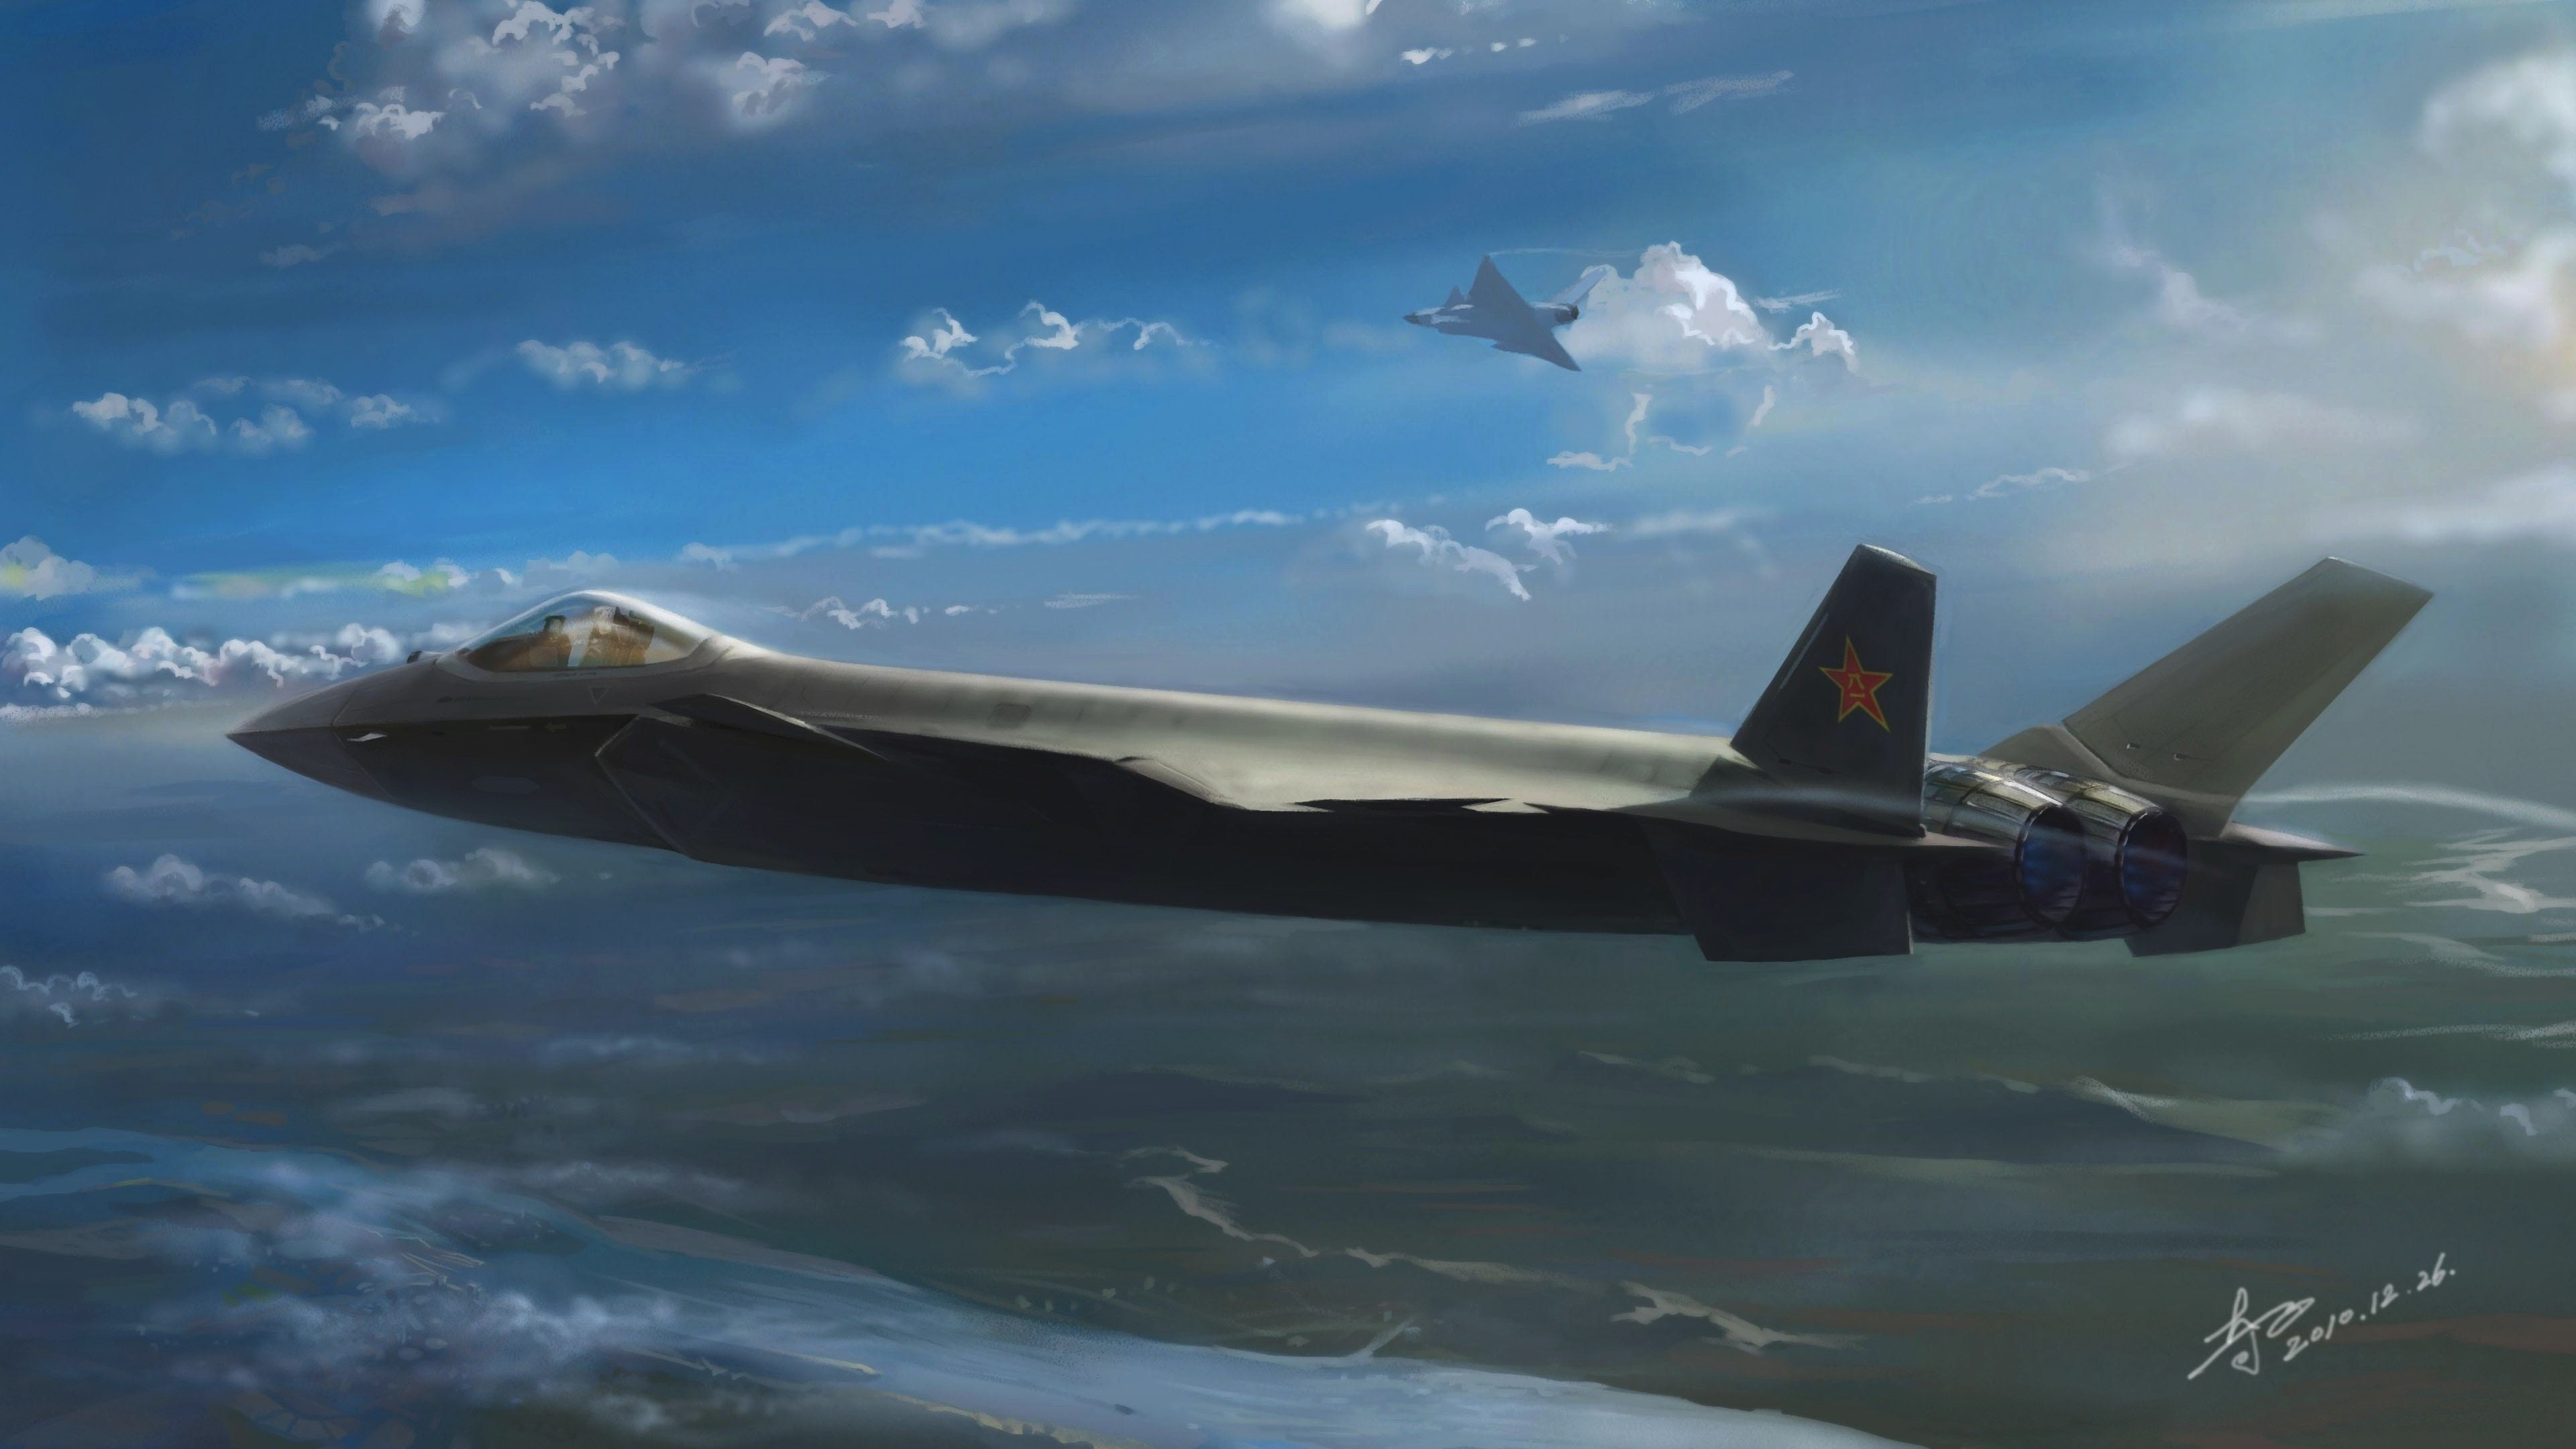 Stealth Aircraft Computer Wallpapers Desktop Backgrounds 3840x2160 3840x2160